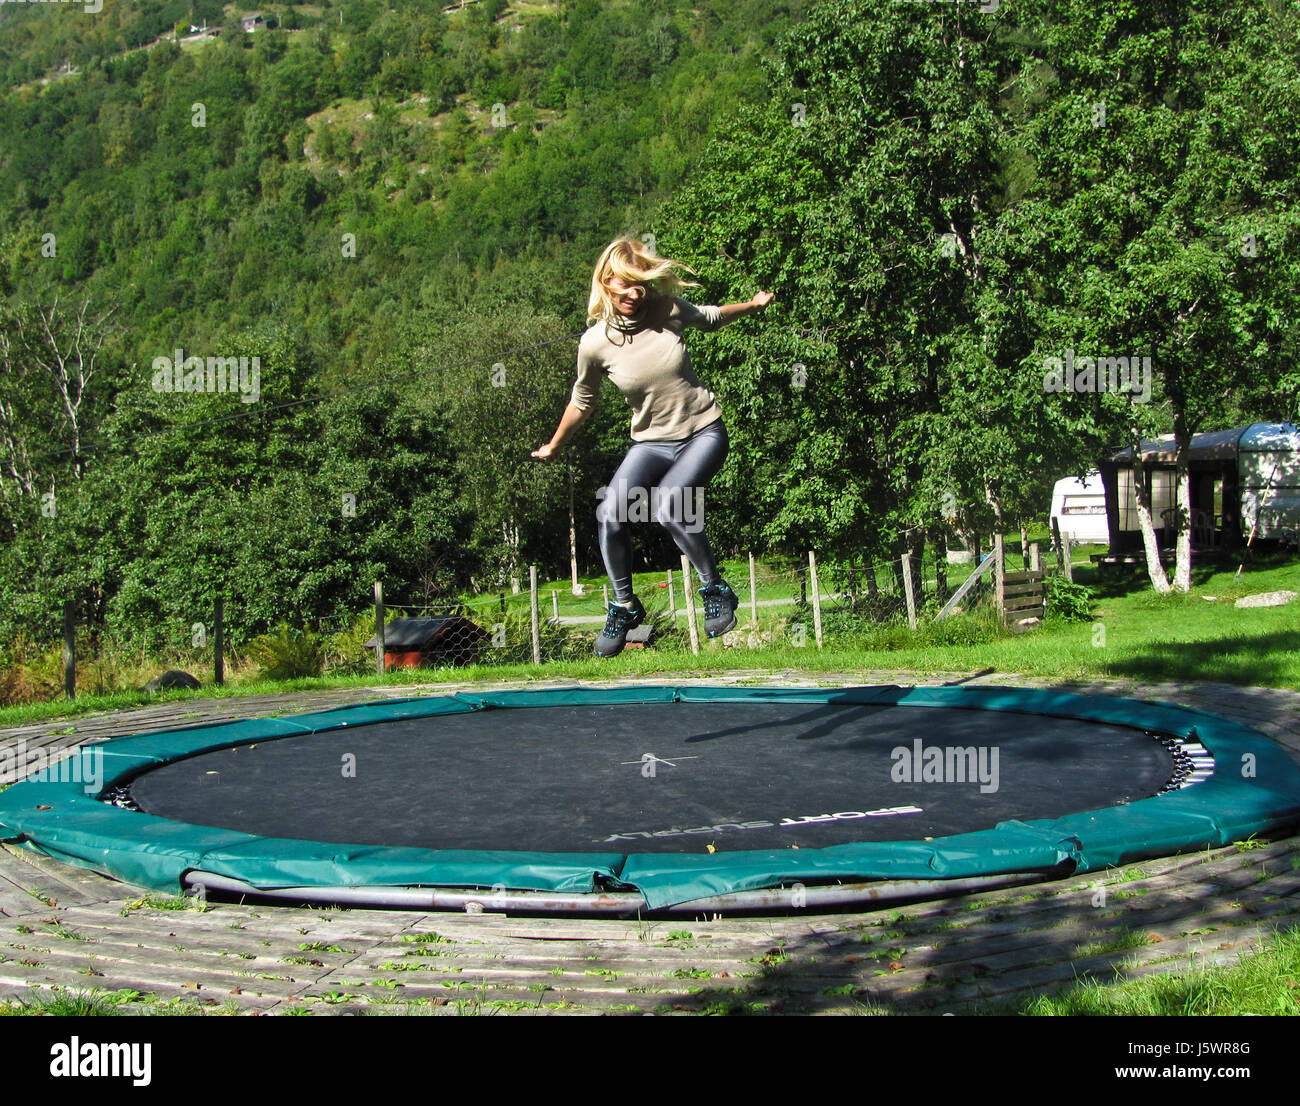 Girl jumping on a trampoline - Stock Image